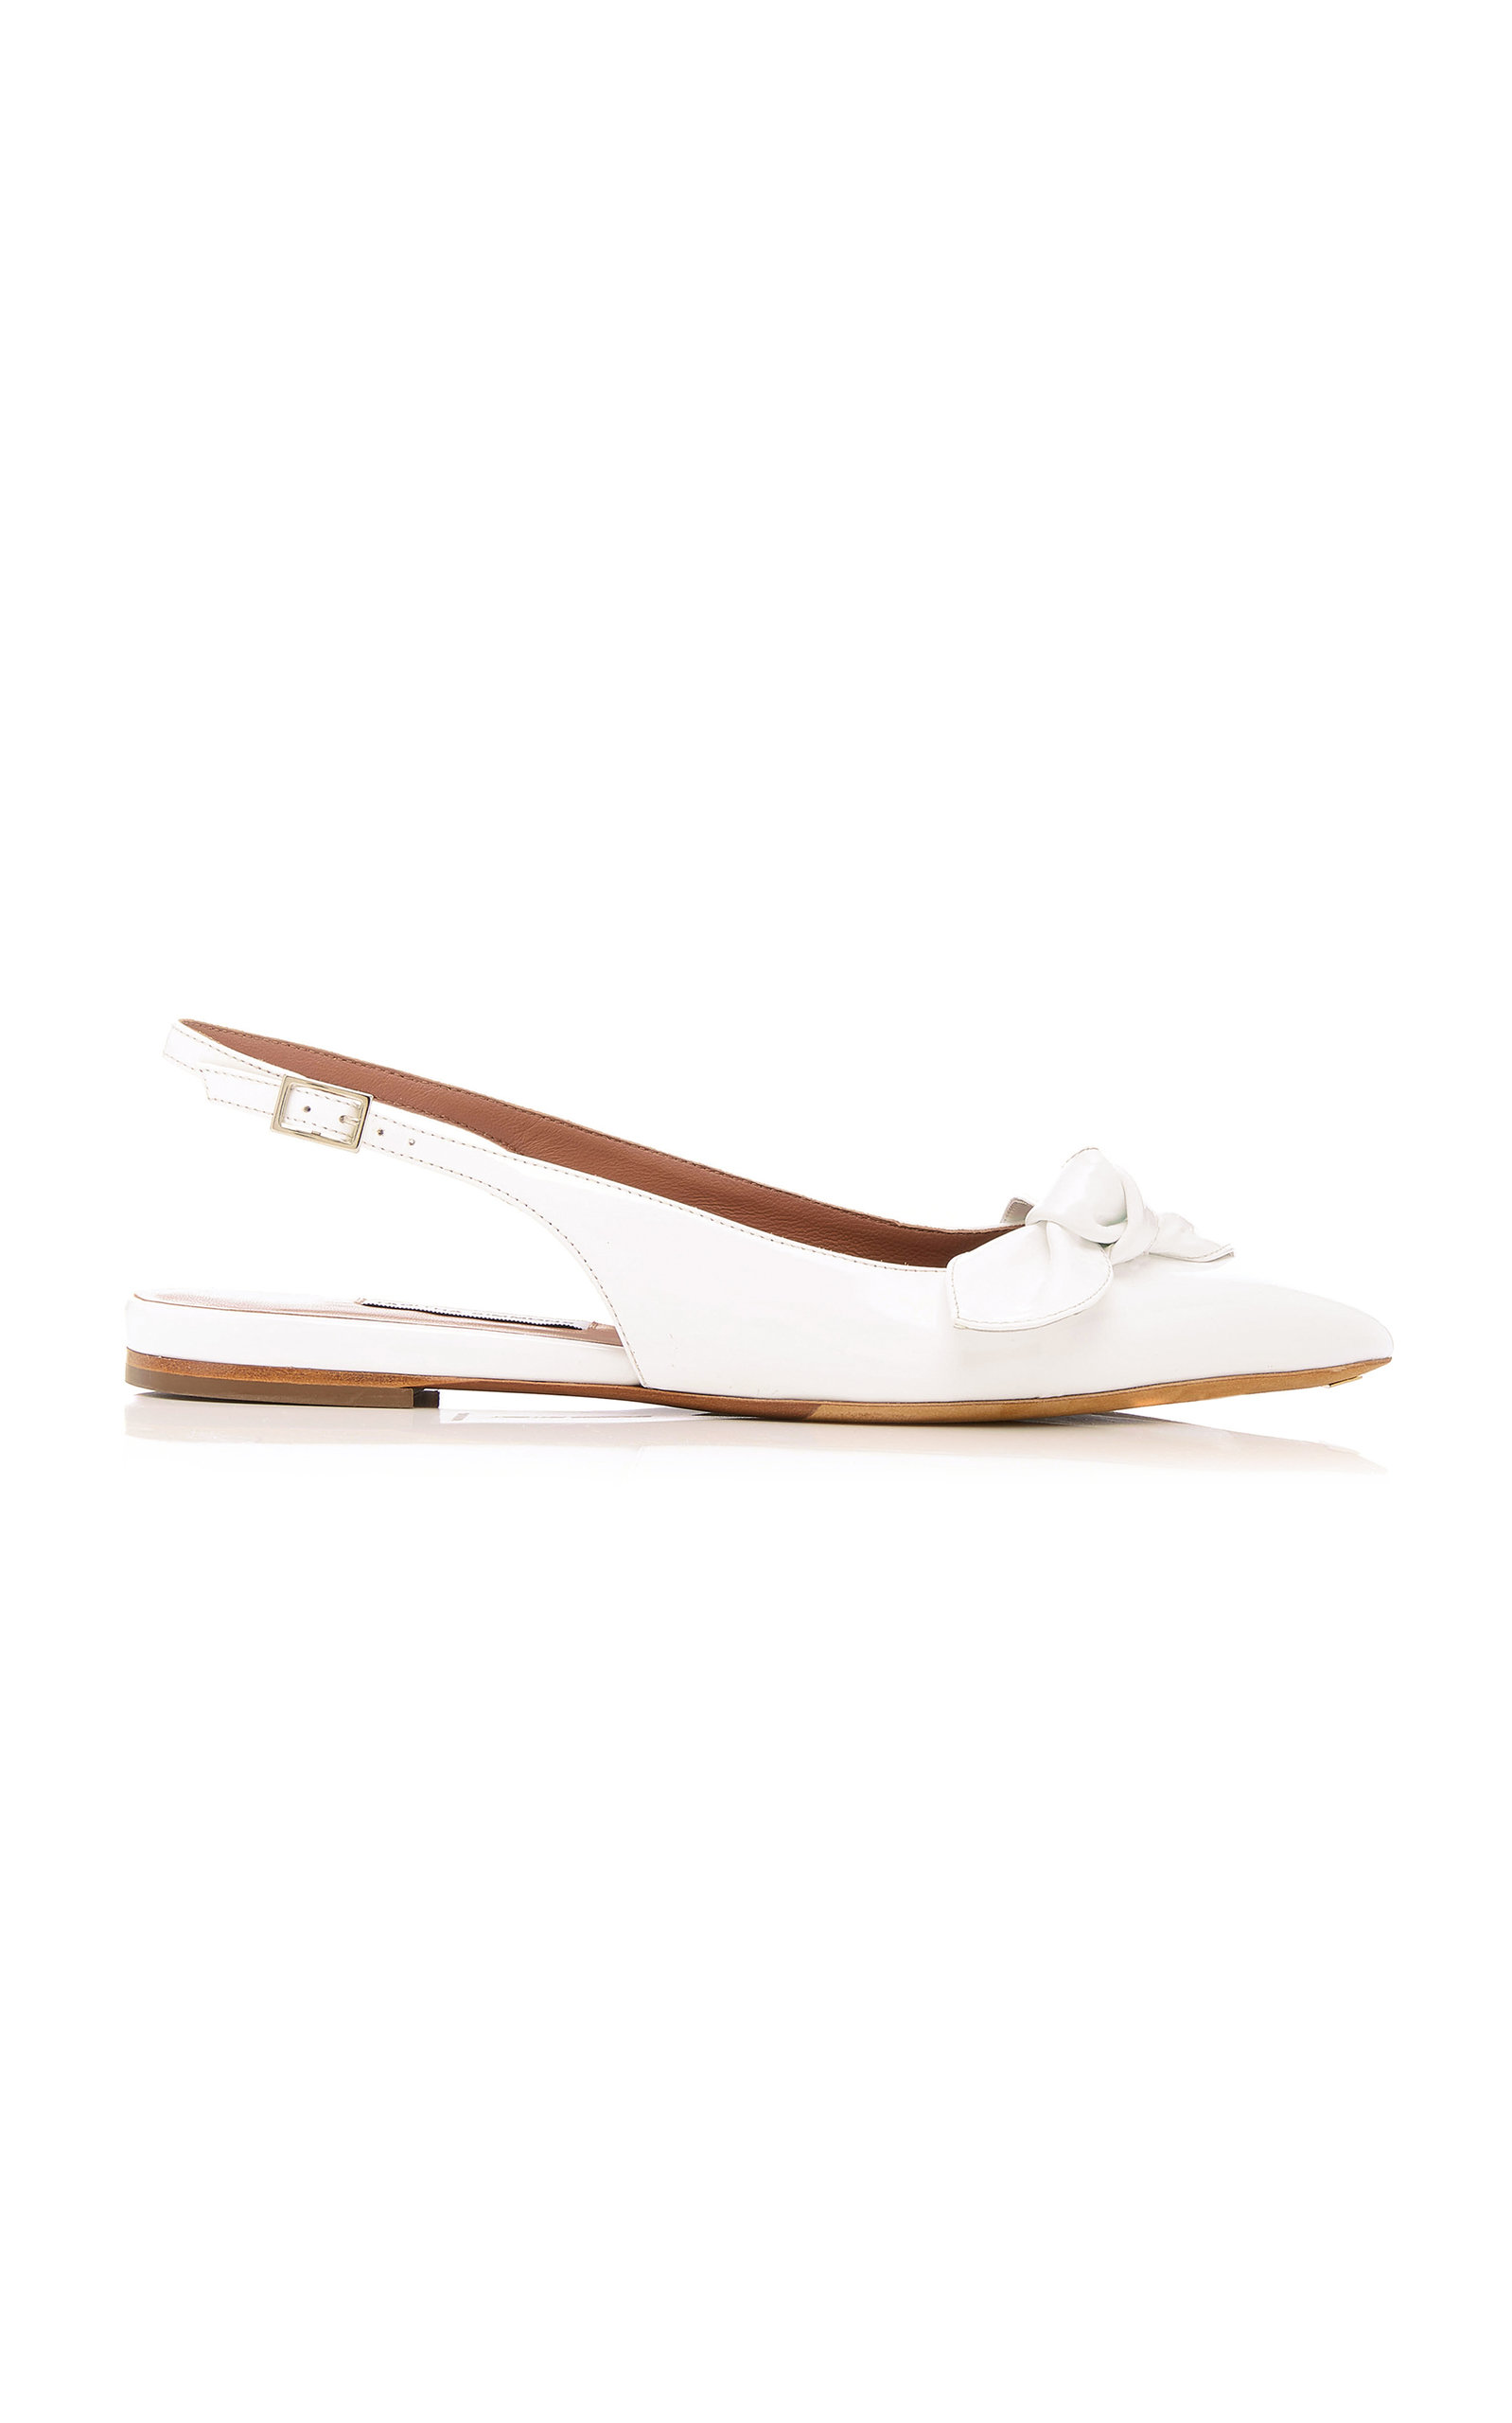 TABITHA SIMMONS Knotty Bow-Embellished Leather Flats in White